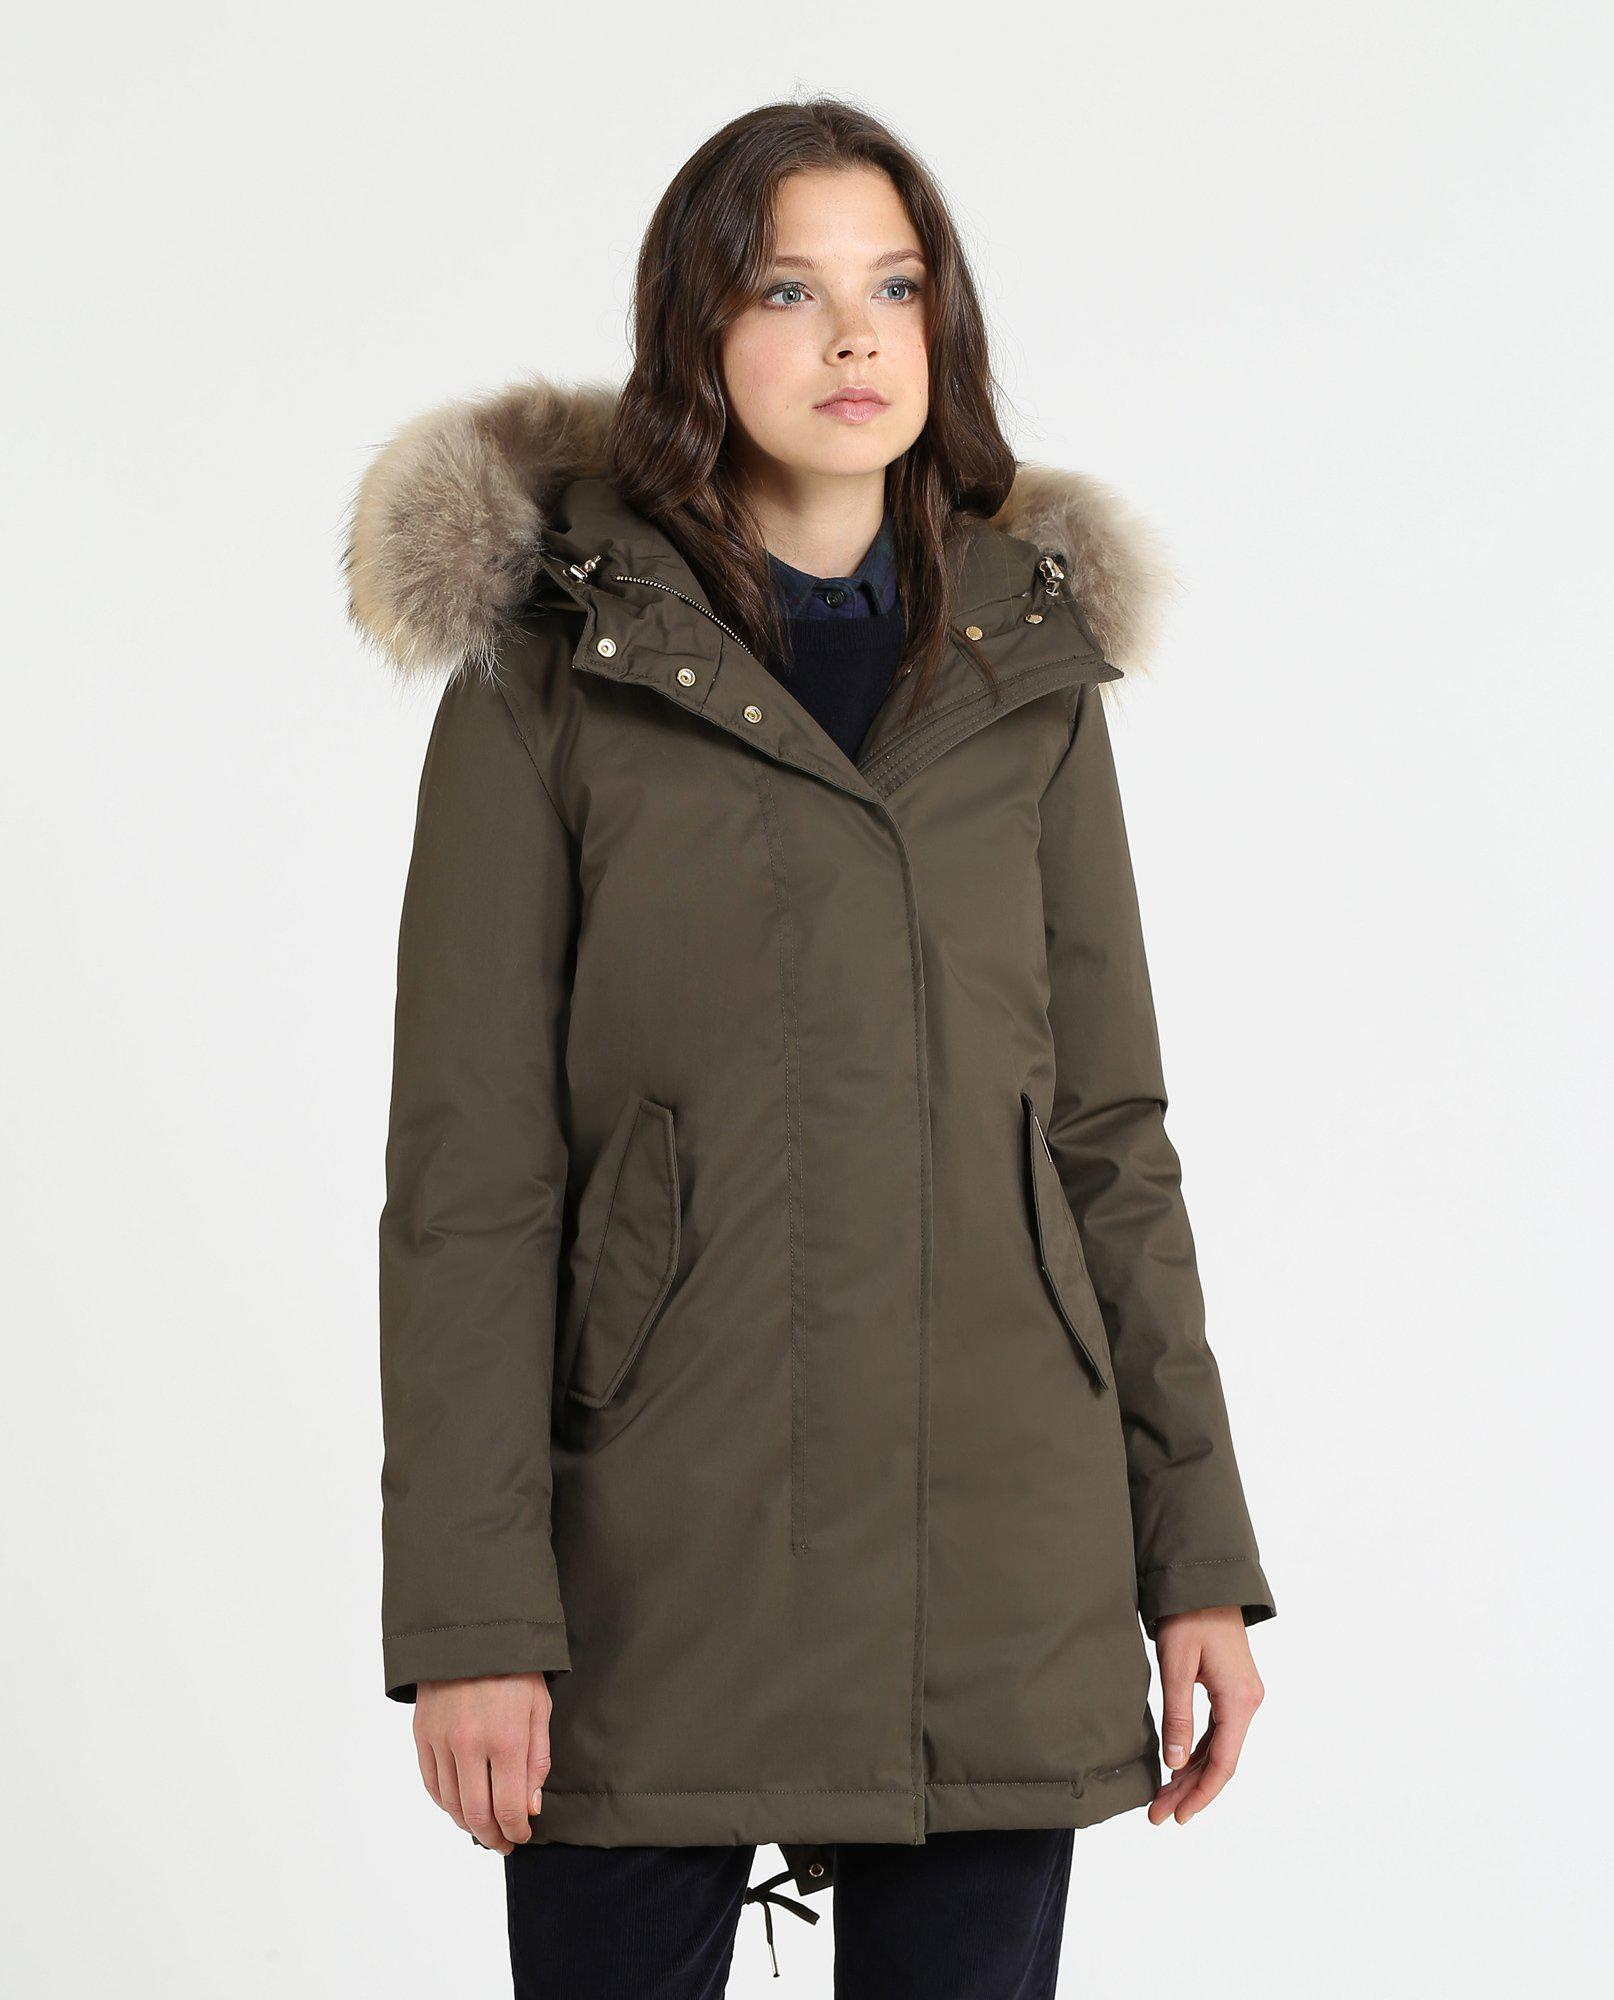 Woolrich Tiffany Parka-Jacket-Woolrich-XS-MILITARY-Classic fashion CF13